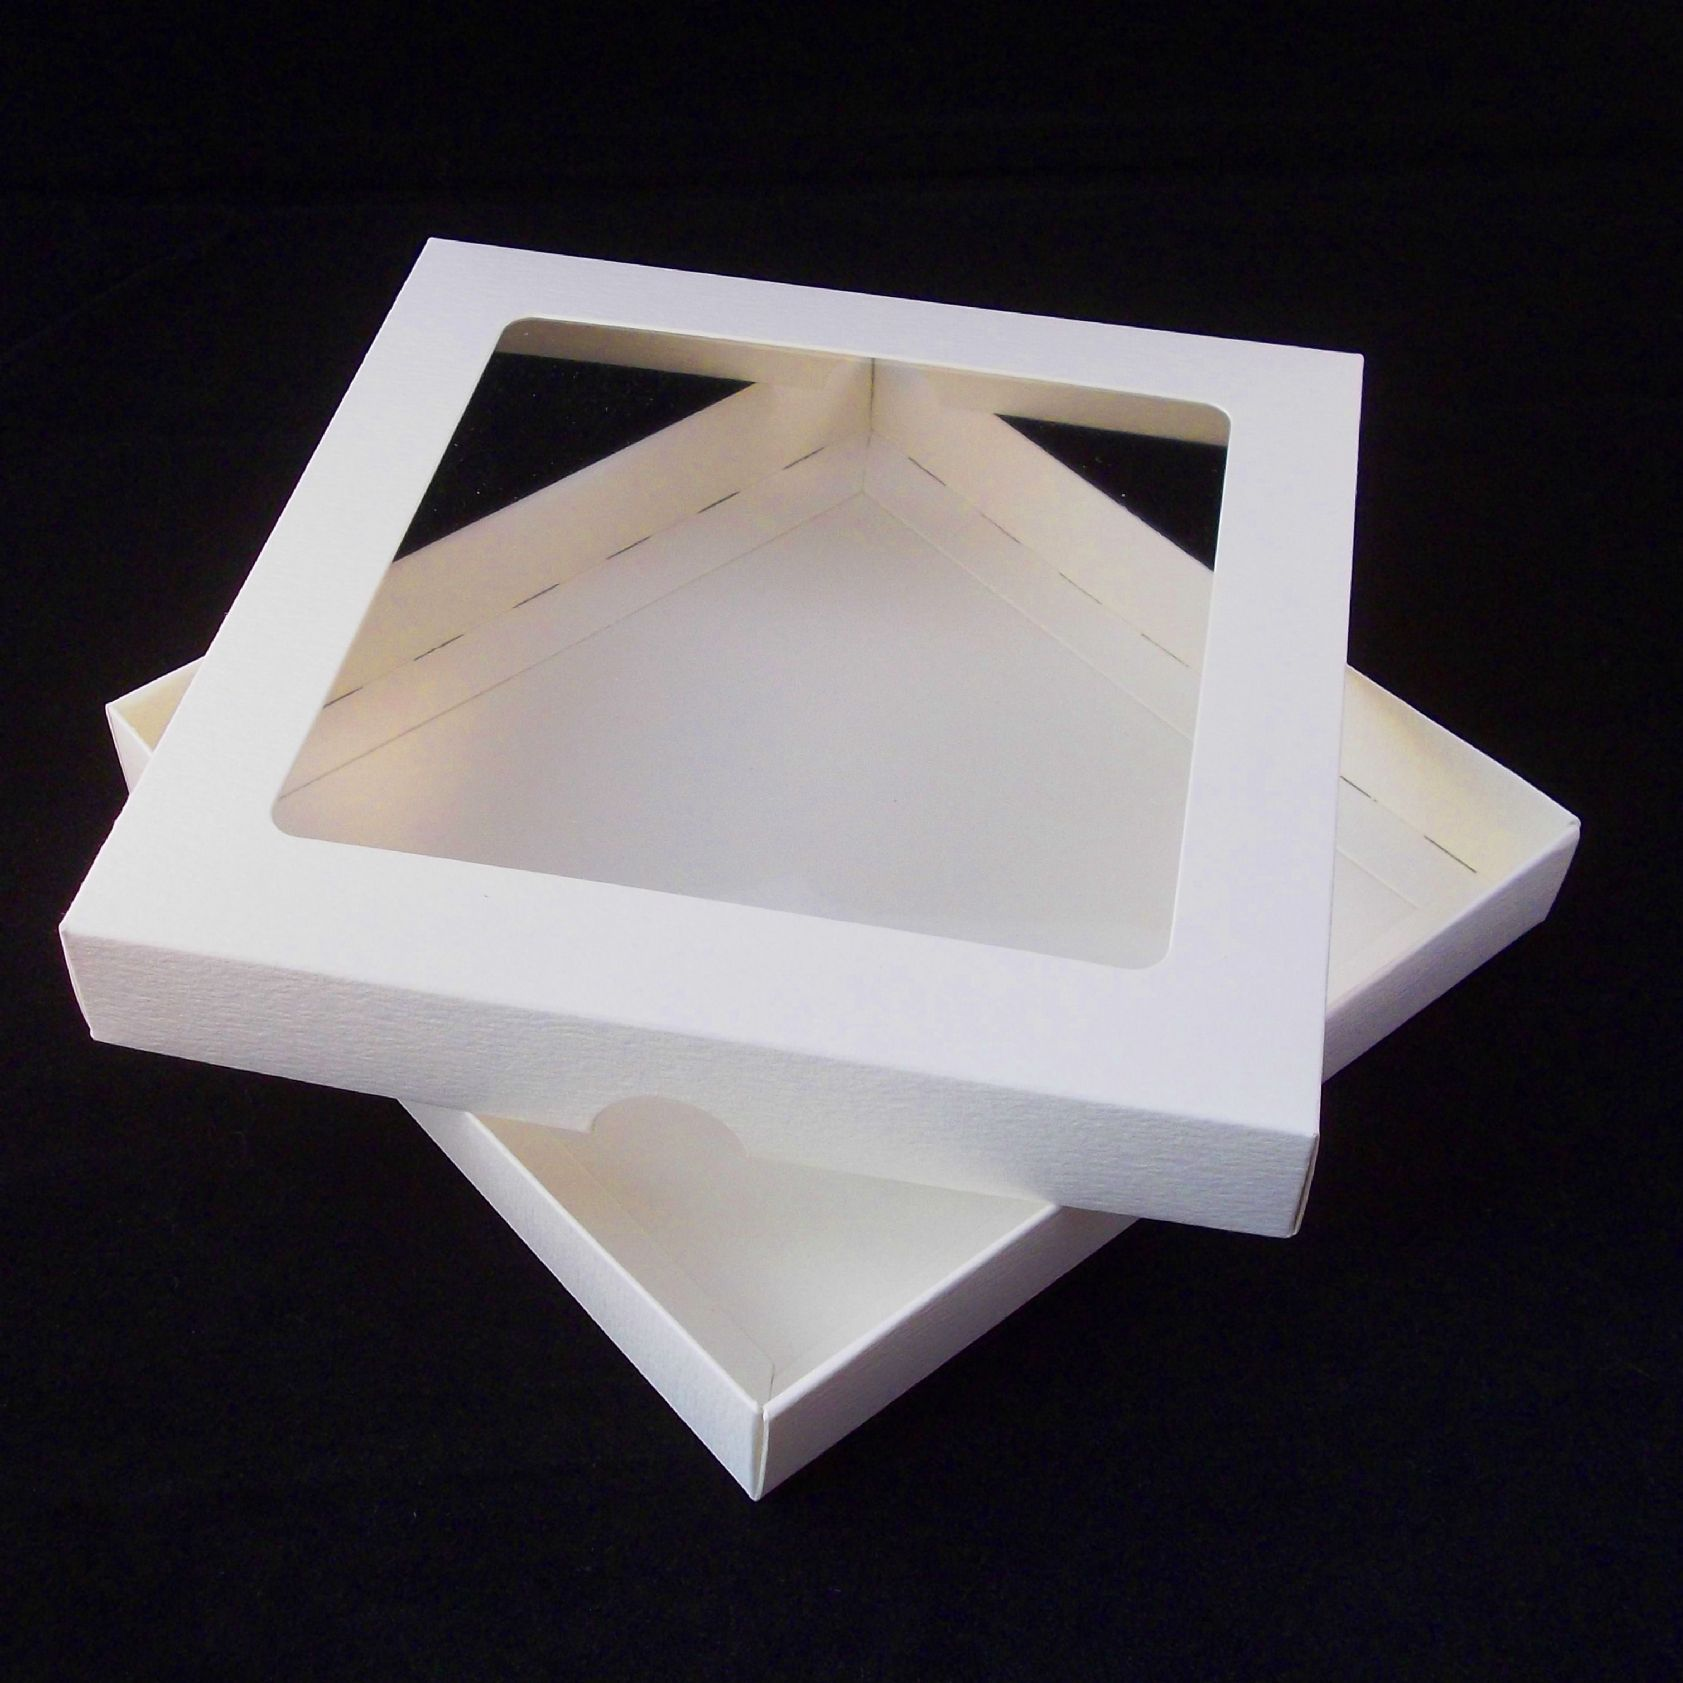 9 x 9 ivory greeting card boxes with aperture lid 9 x 9 ivory greeting card boxes with aperture lid m4hsunfo Choice Image